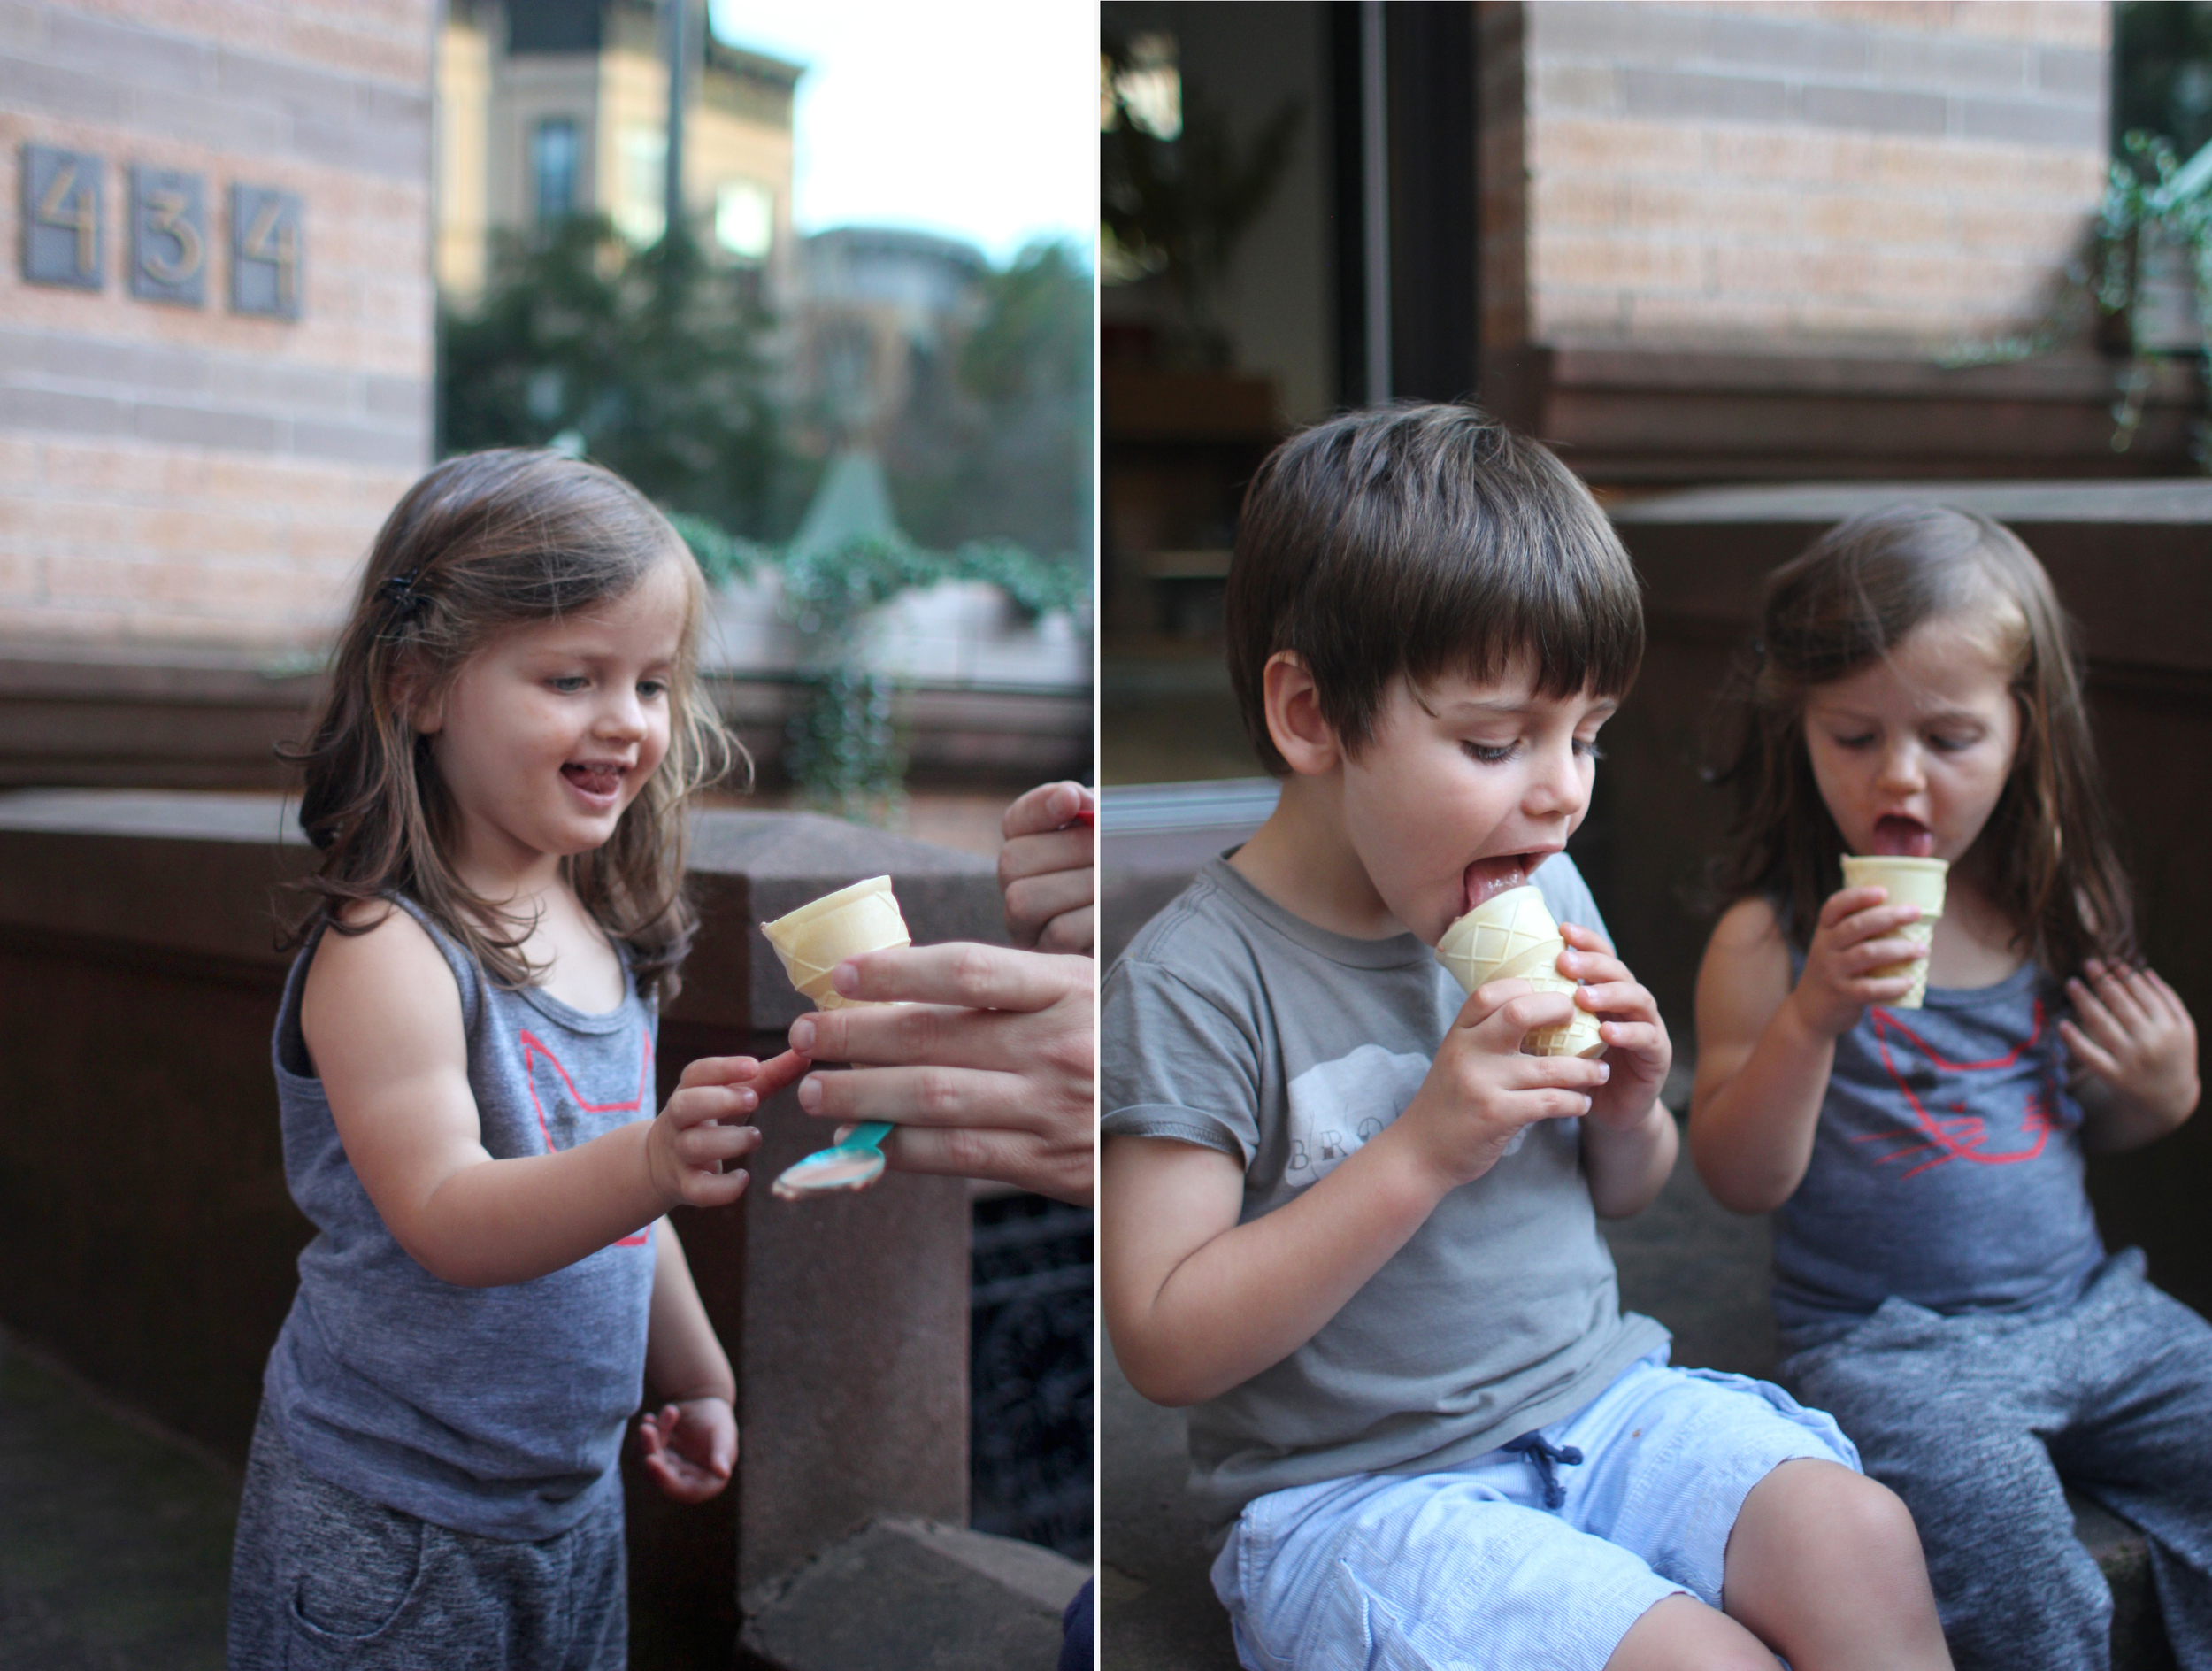 Ice cream on the stoop? Sounds like the perfect way to end the summer.